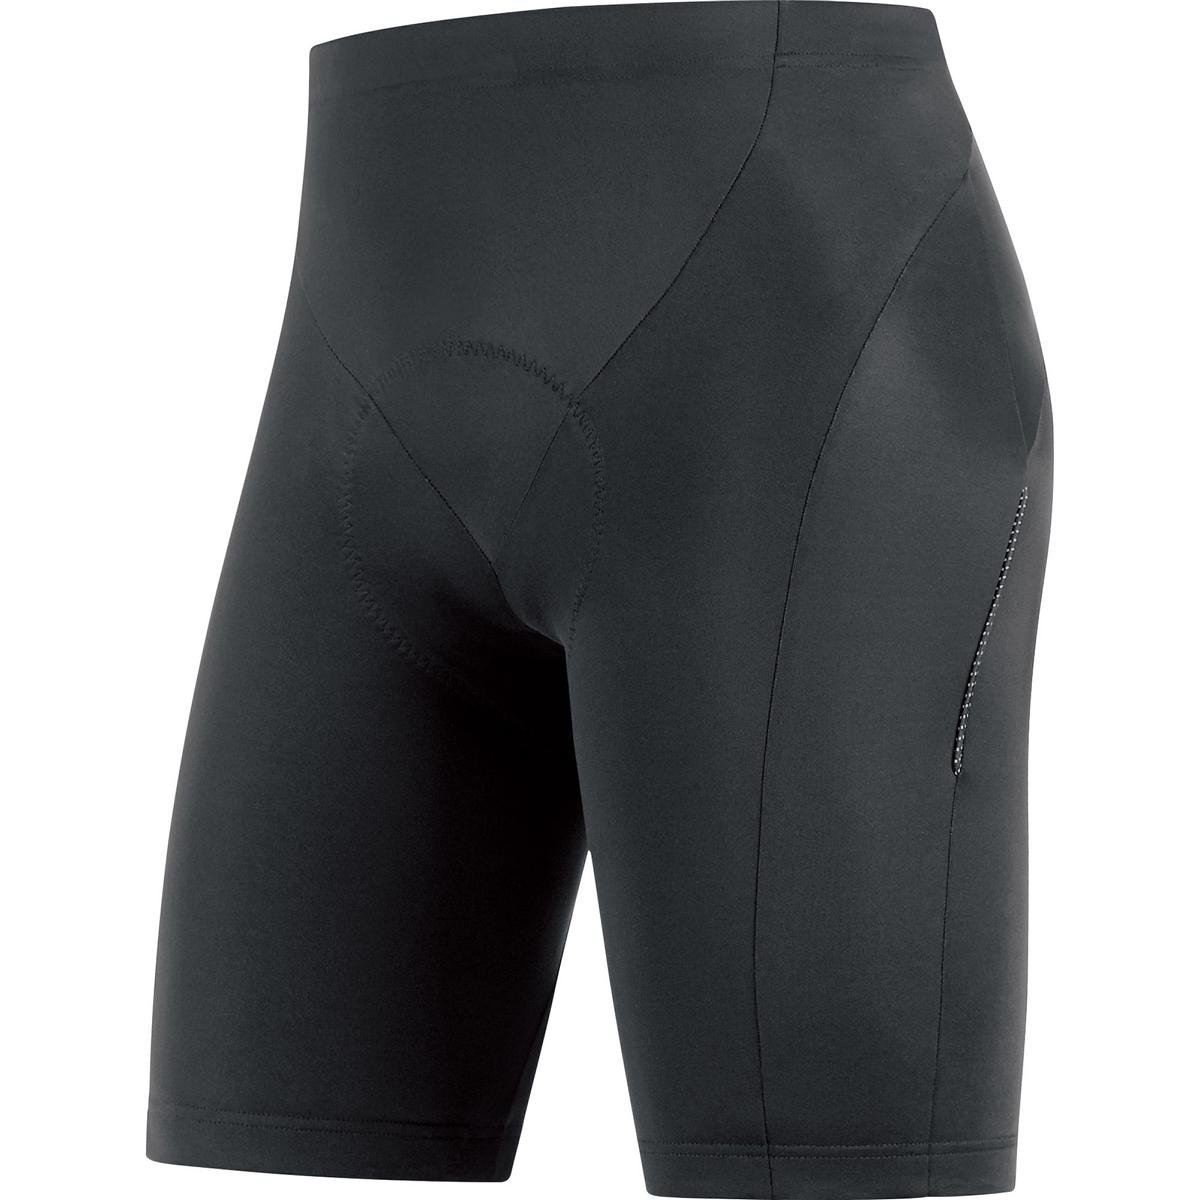 GORE BIKE WEAR Men's 2 in 1 Knee-length Cycling Shorts, Integrated inner lining with seat padding, GORE Selected Fabrics, 2in 1 Shorts+, TSPELE990003 Pantalón Corto Hombre Badana Tights short+